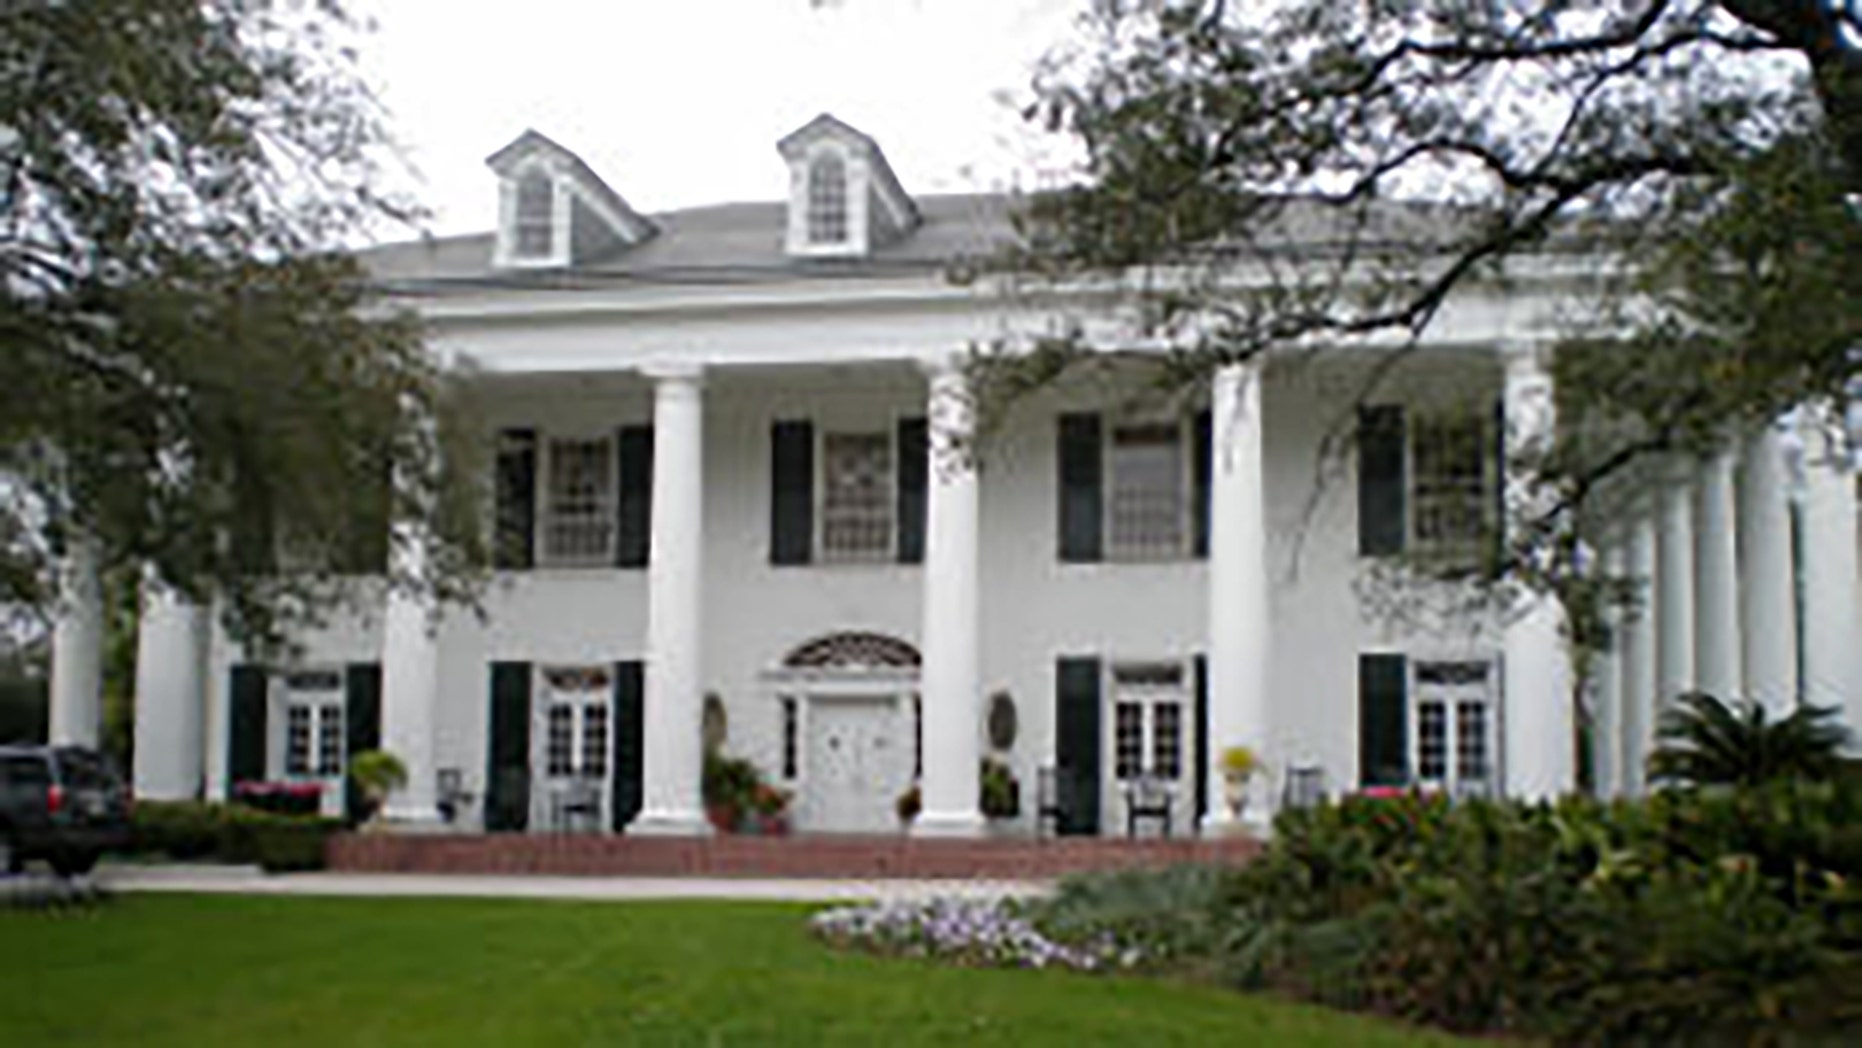 Westlake Legal Group lousiana-governors-mansion Suspect allegedly breaks into Louisiana governor's mansion, falls asleep on couch: report fox-news/us/us-regions/southeast/louisiana fox-news/us/crime/police-and-law-enforcement fox-news/us/crime fox news fnc/us fnc Danielle Wallace article 265e5fbf-6fe7-5d74-b306-c3cd417b77de